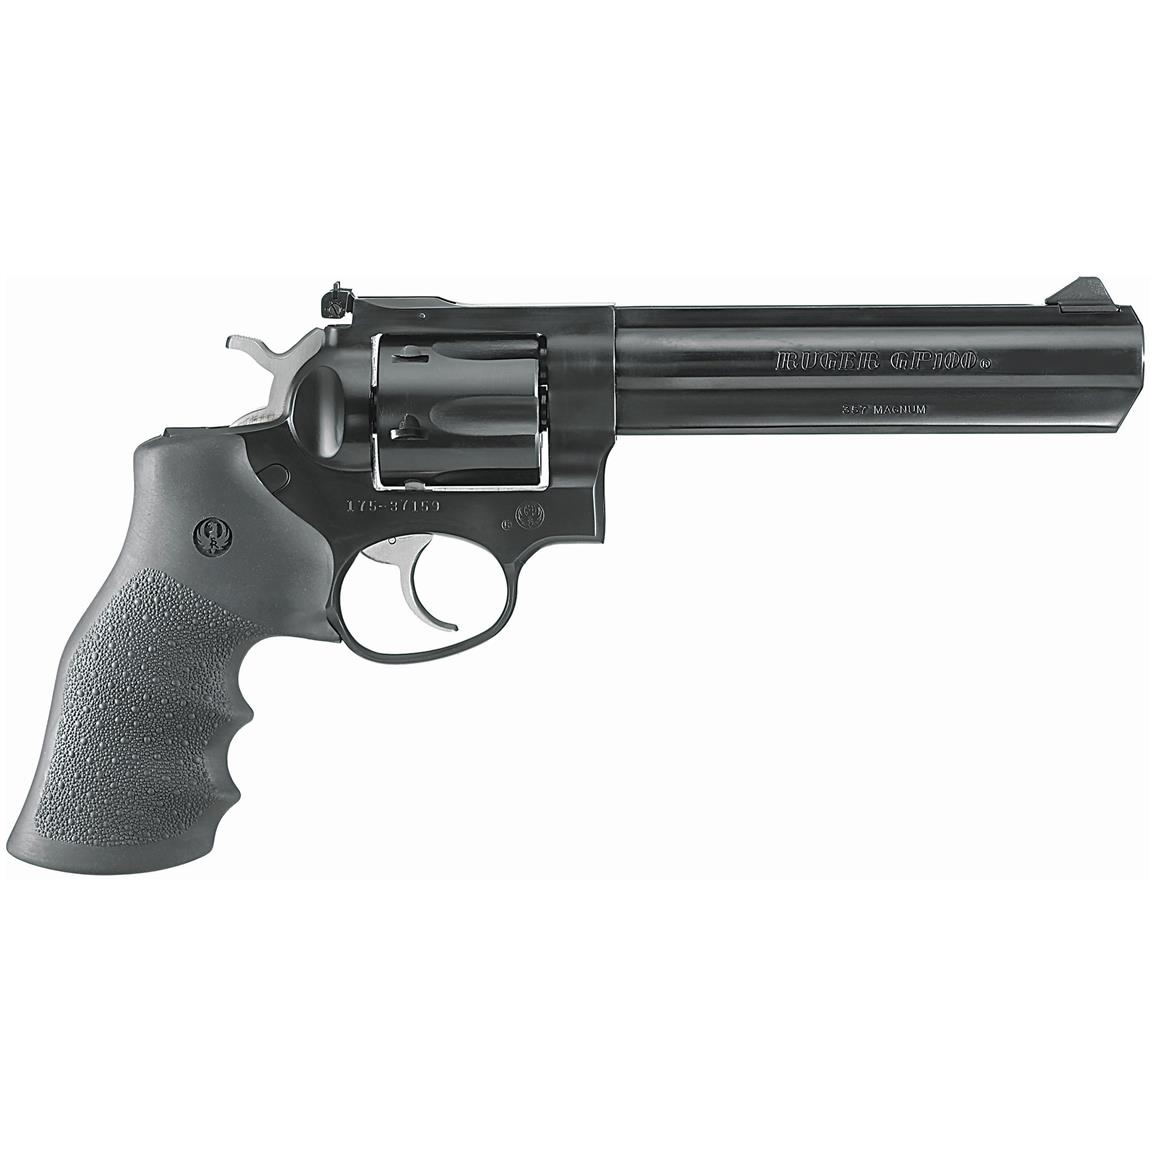 "Ruger GP100, Double Action, .357 Magnum, 6"" Barrel, 6 Rounds"